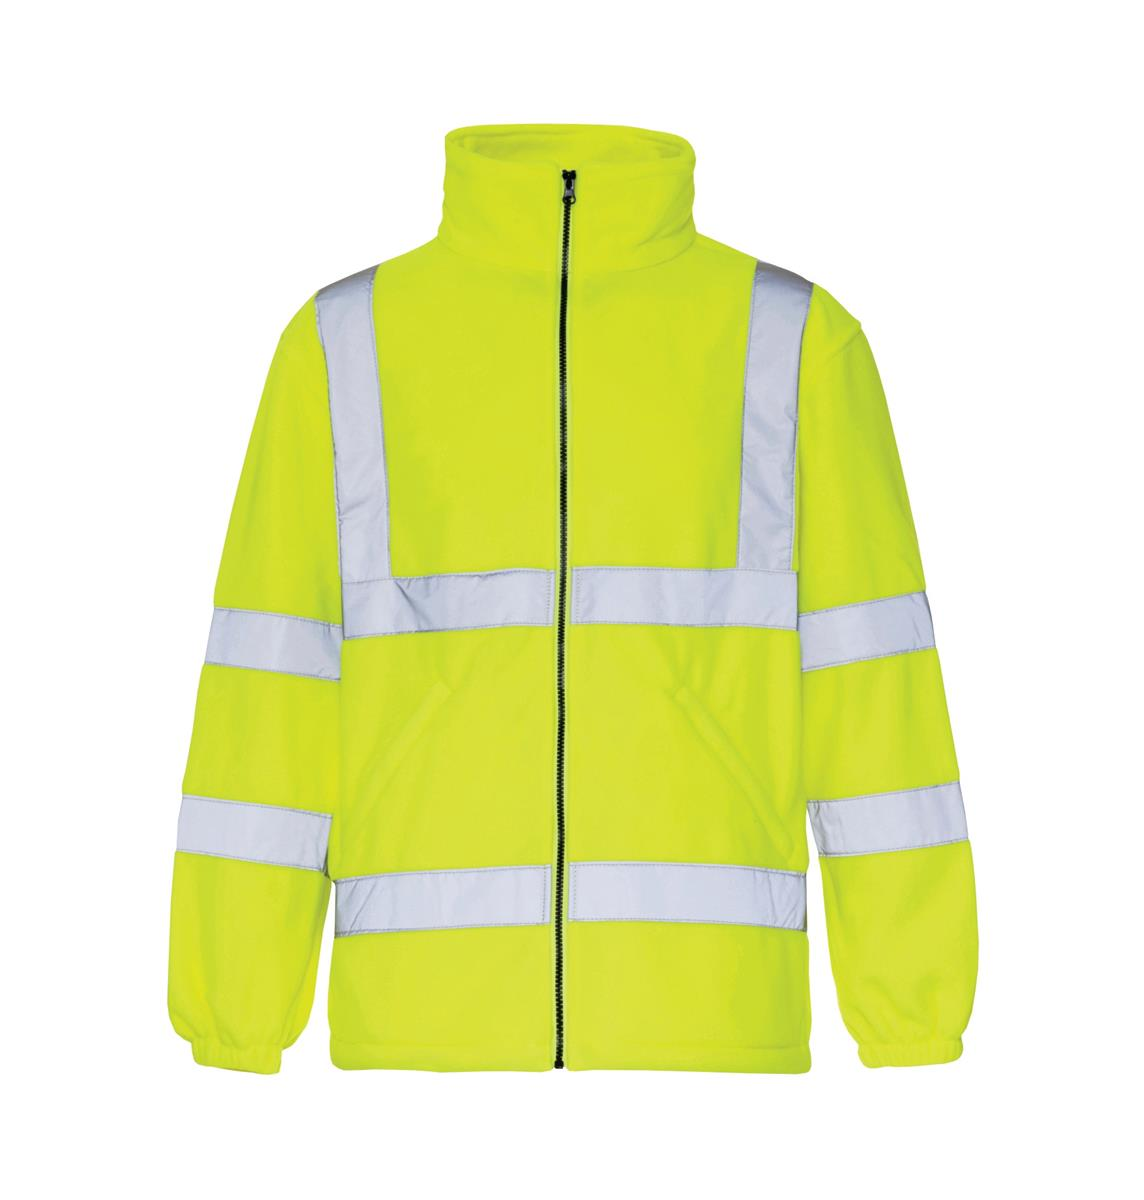 ST High Vis Micro Fleece Jacket Poly with Zip Fastening Med Yellow Ref 38042 *Approx 3 Day Leadtime*